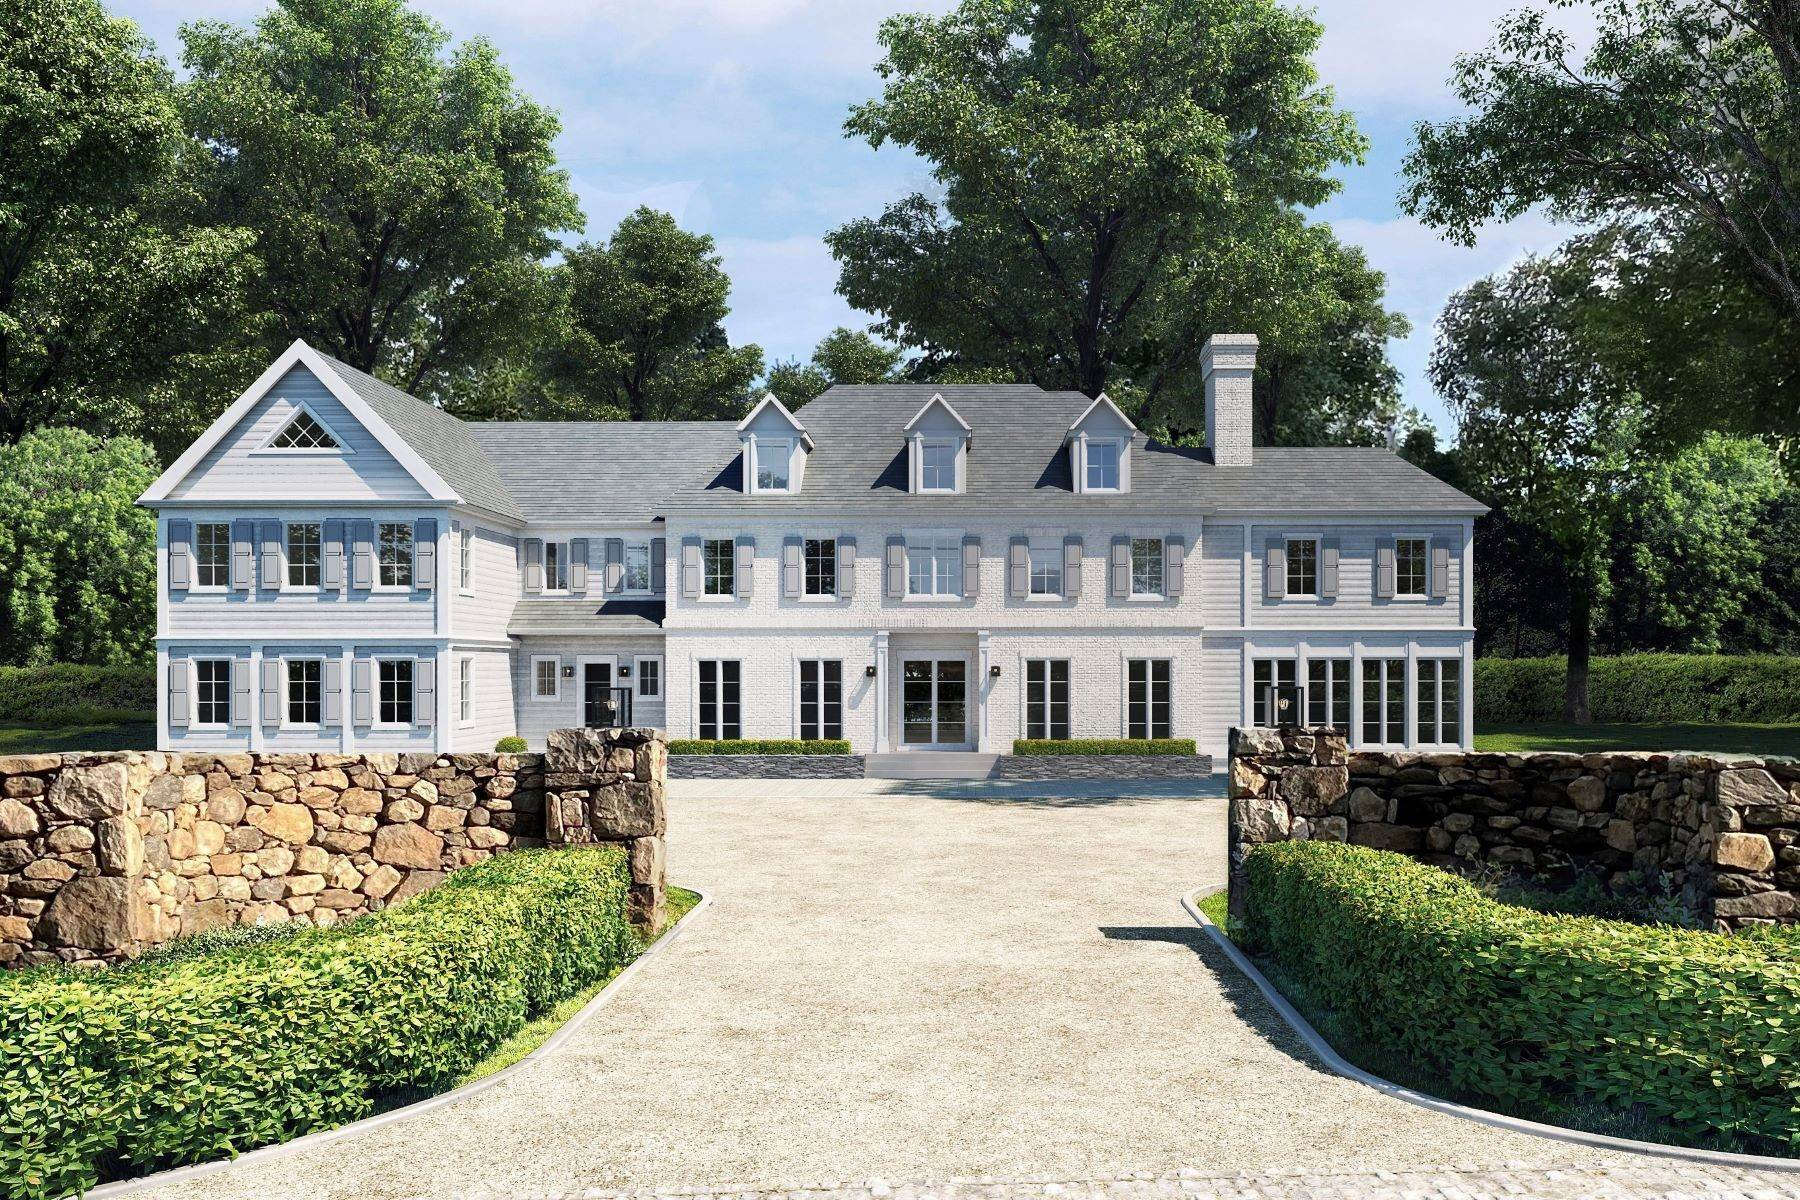 Single Family Homes for Sale at 32 Grahampton Lane, Mid-Country, Greenwich, Connecticut, 06830 United States